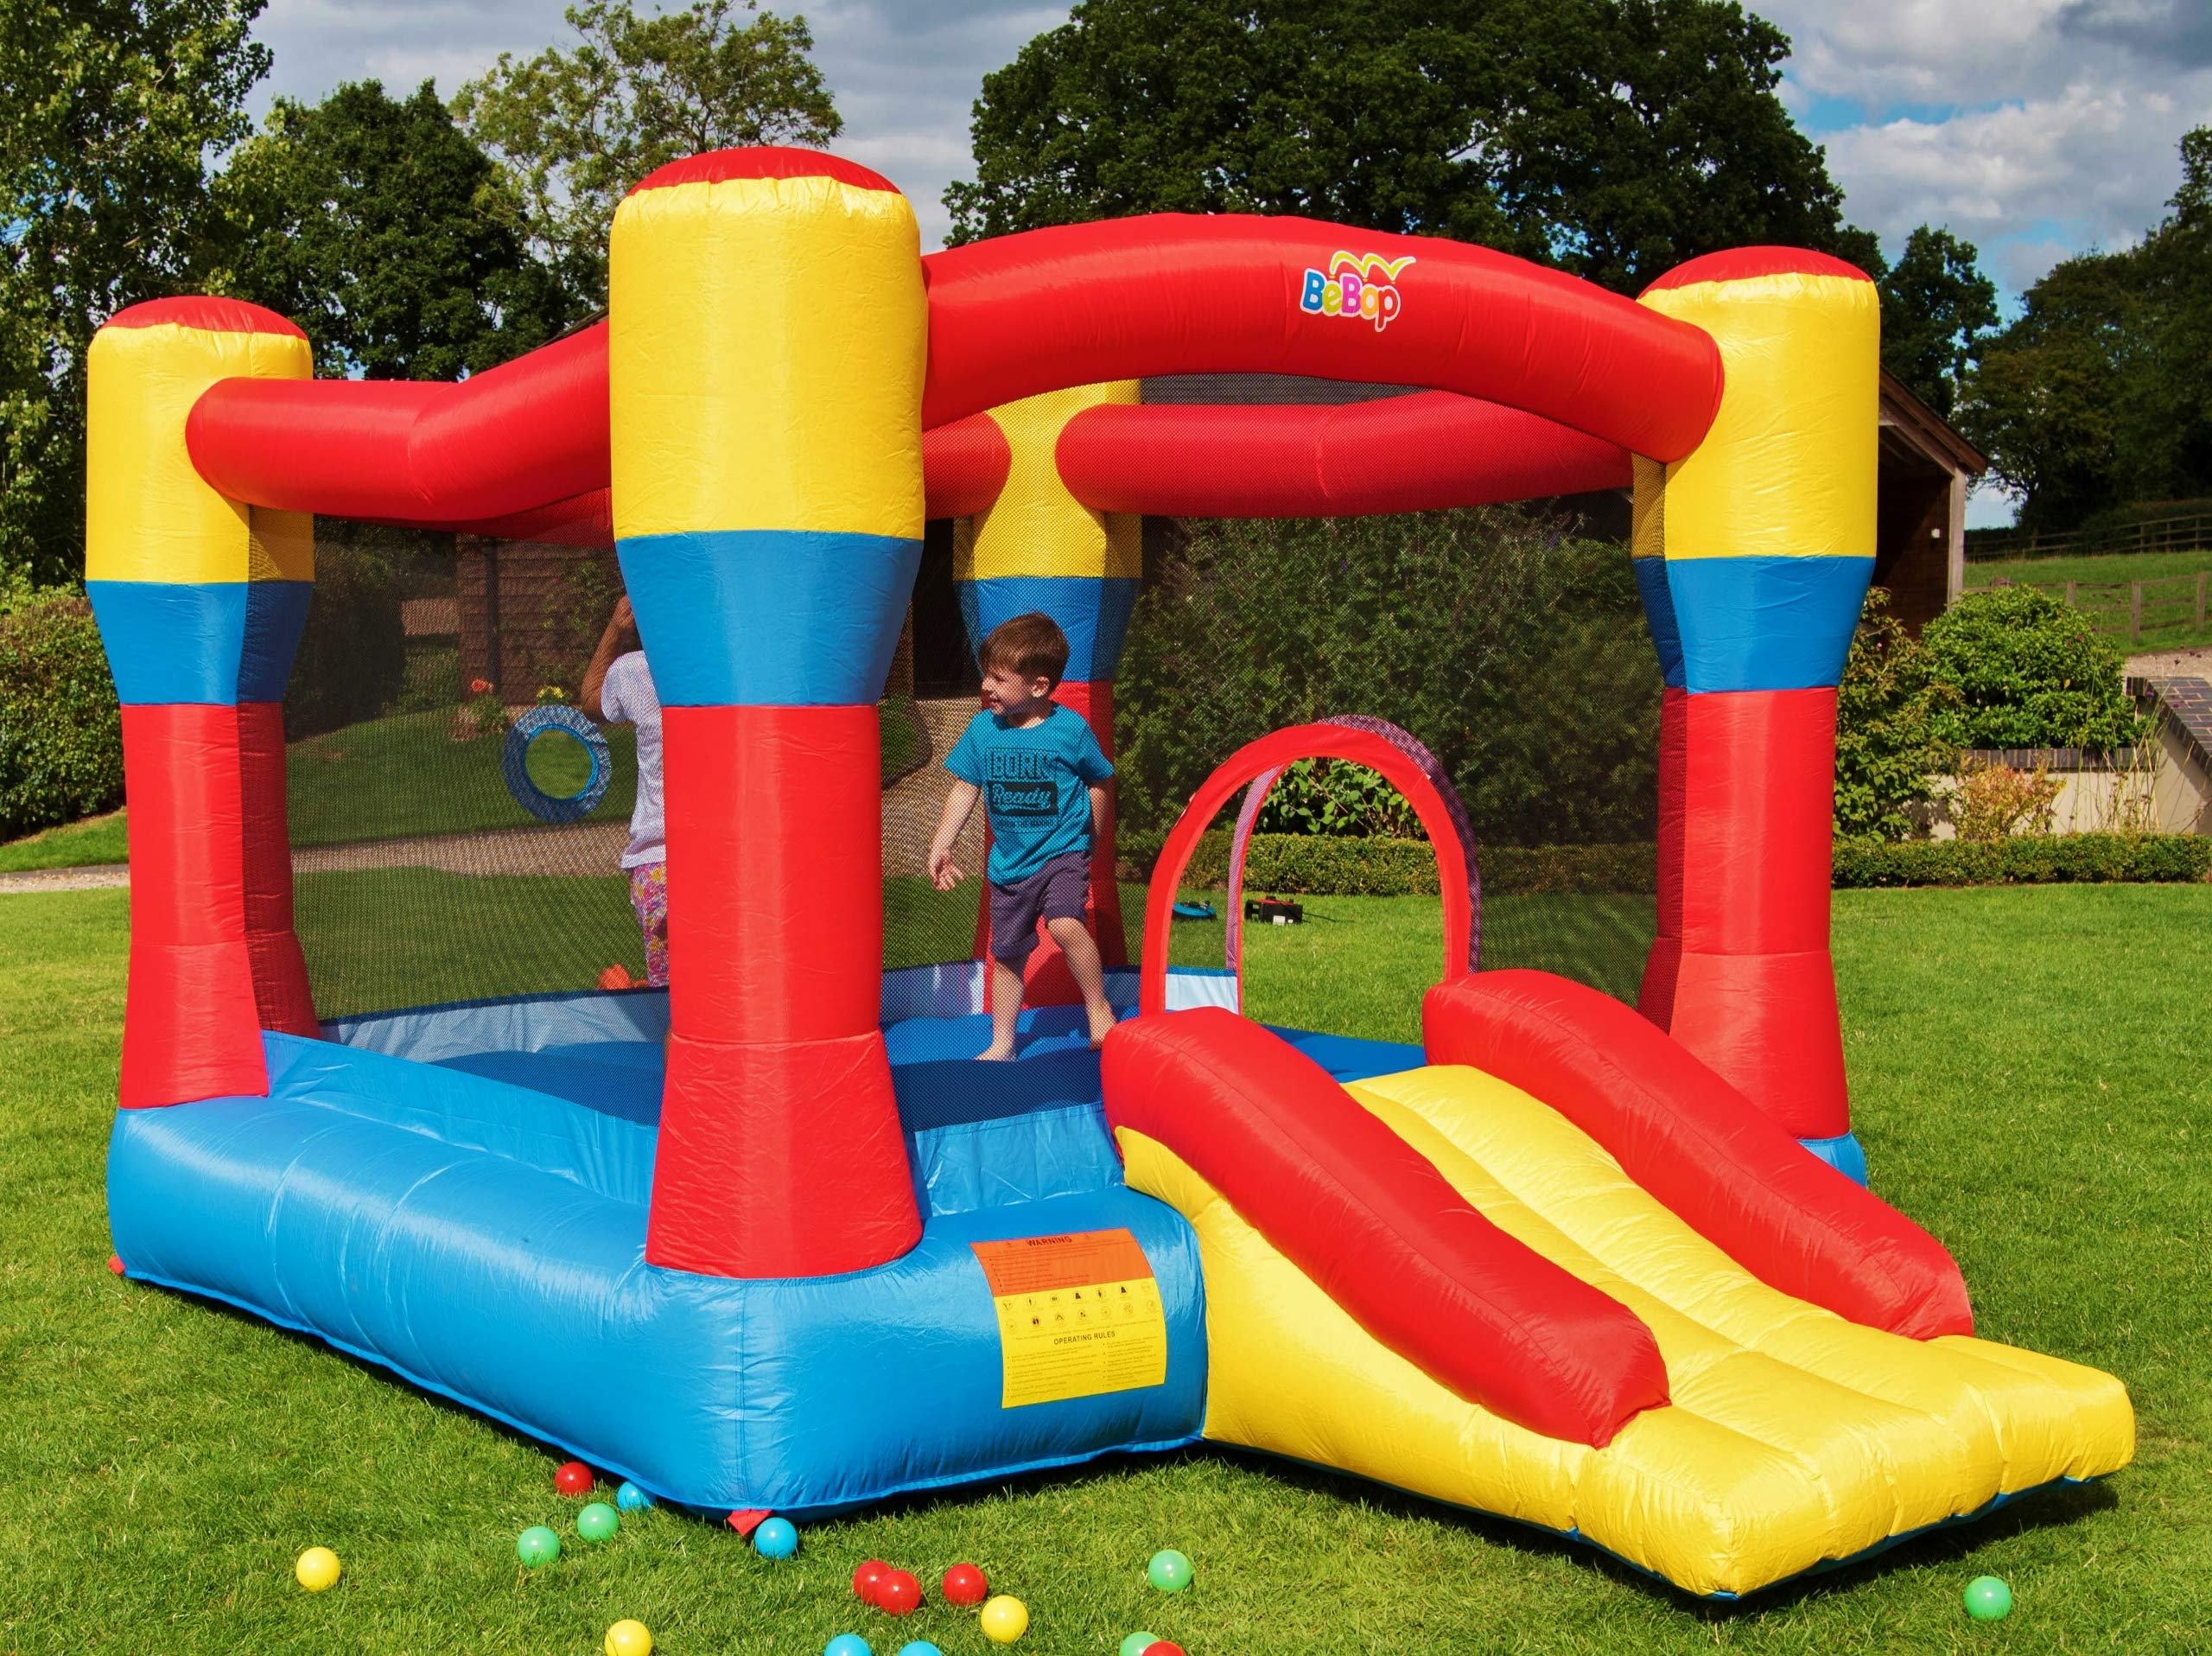 BeBoP 12ft Classic Inflatable Bouncy Castle and Slide- Buy Online in  Pakistan at desertcart.pk. ProductId : 51069965.